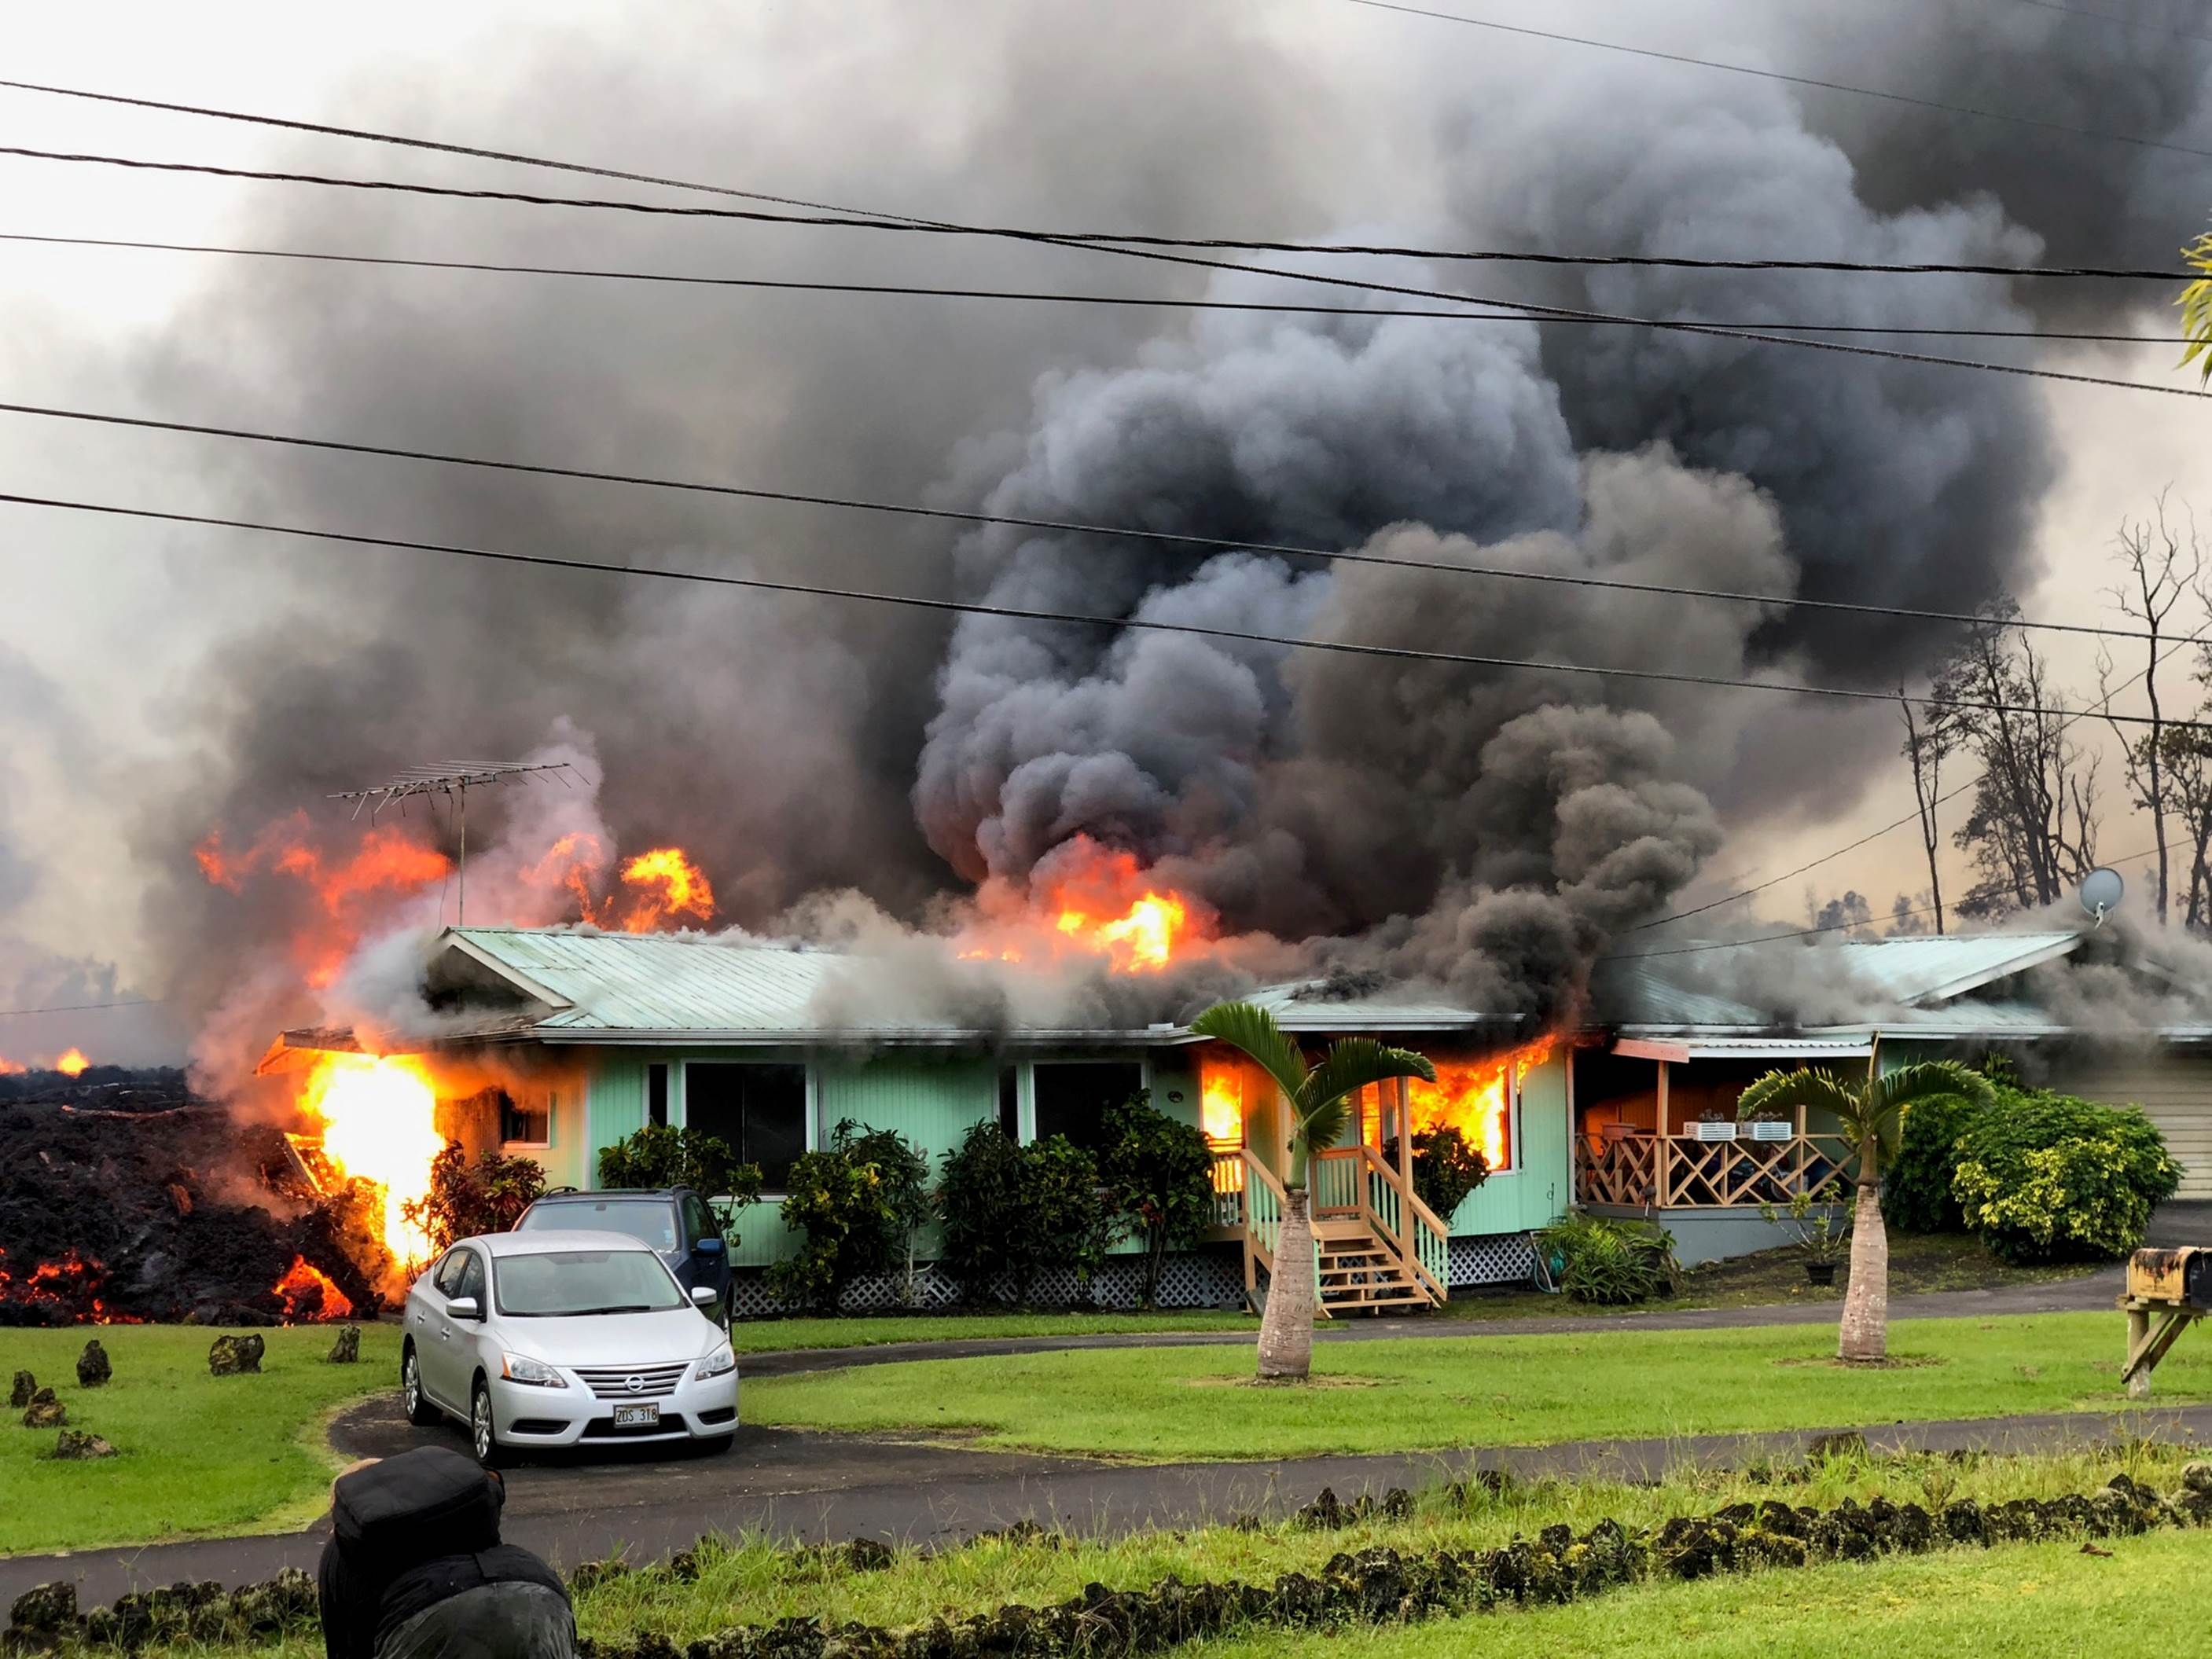 Lava from a nearby volcano engulfs a home in the Leilani Estates neighborhood of Pahoa, Hawaii on May 6, 2018.